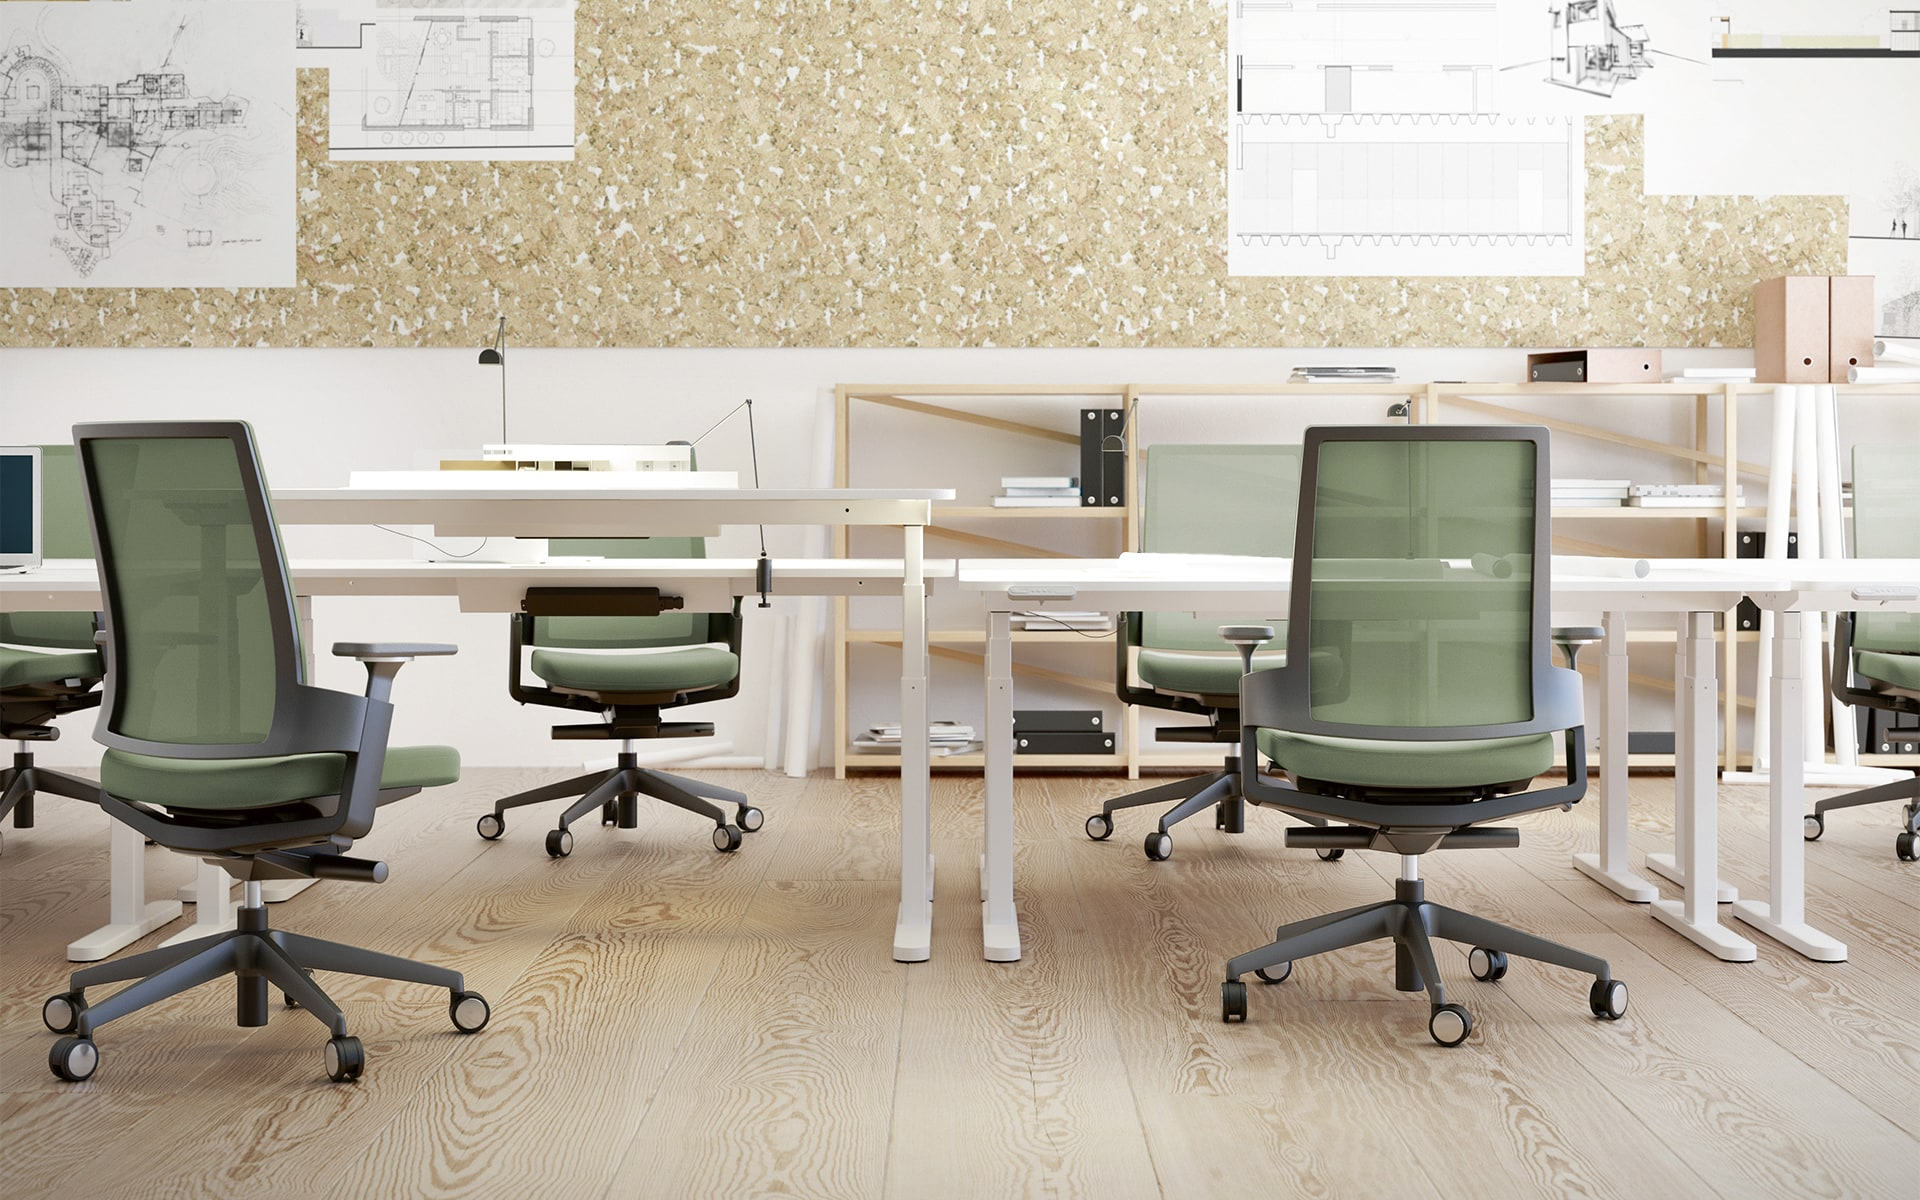 Green Forma 5 3.60 office chairs by ITO Design in architectural office